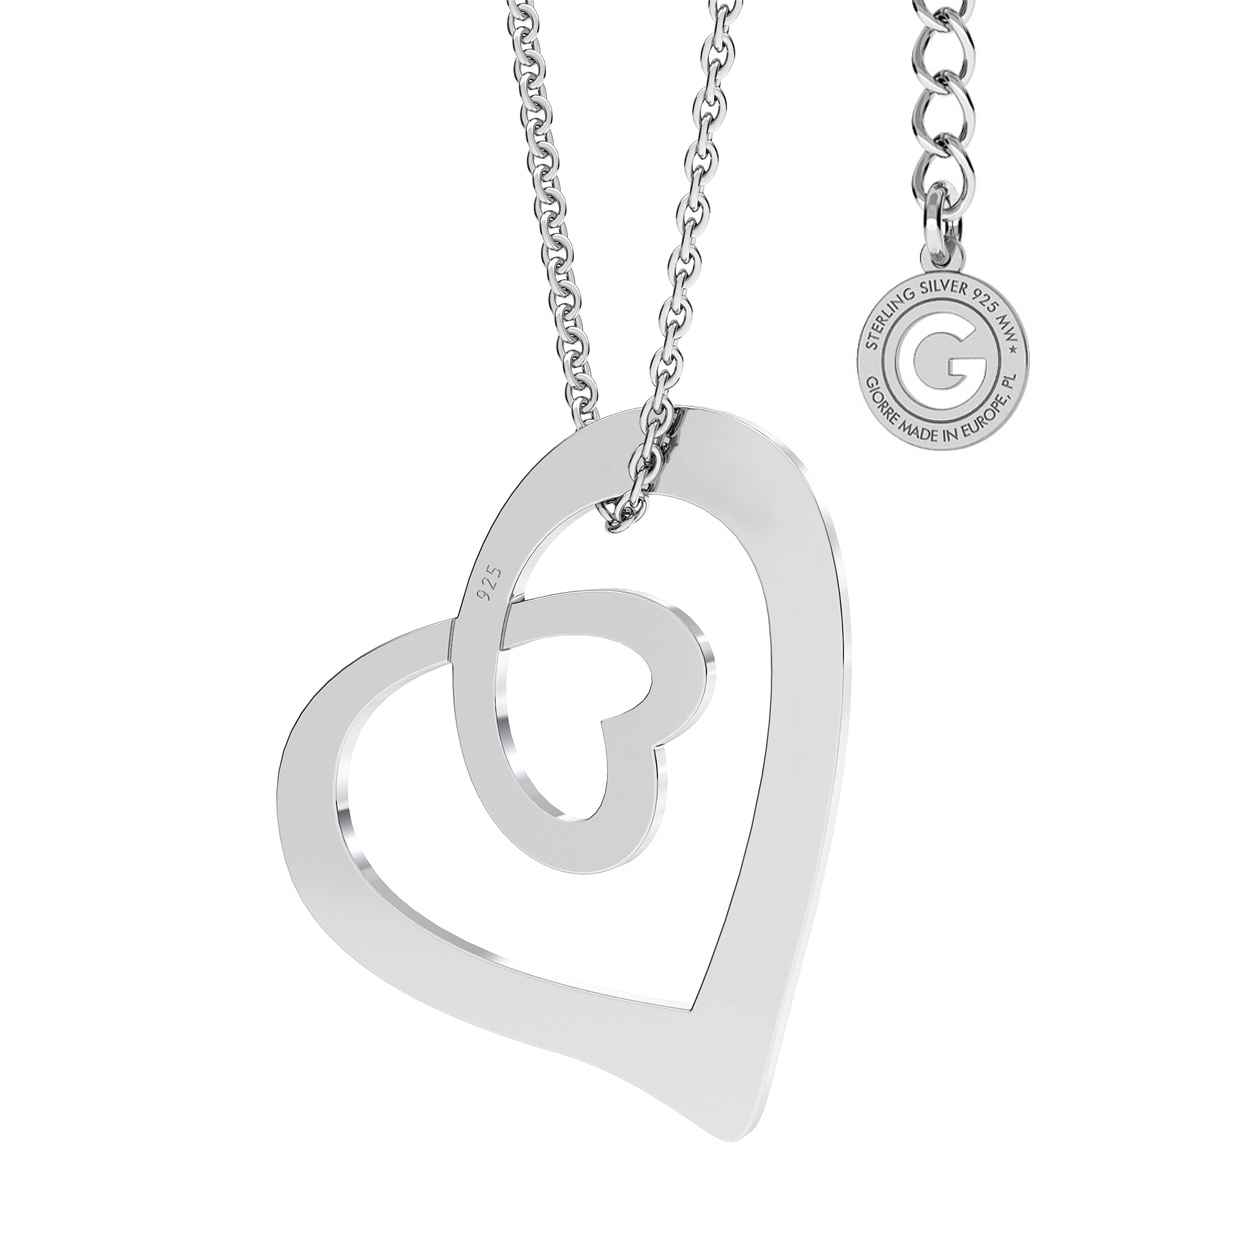 HEART NECKLACE SILVER 925 WITH ENGRAVED